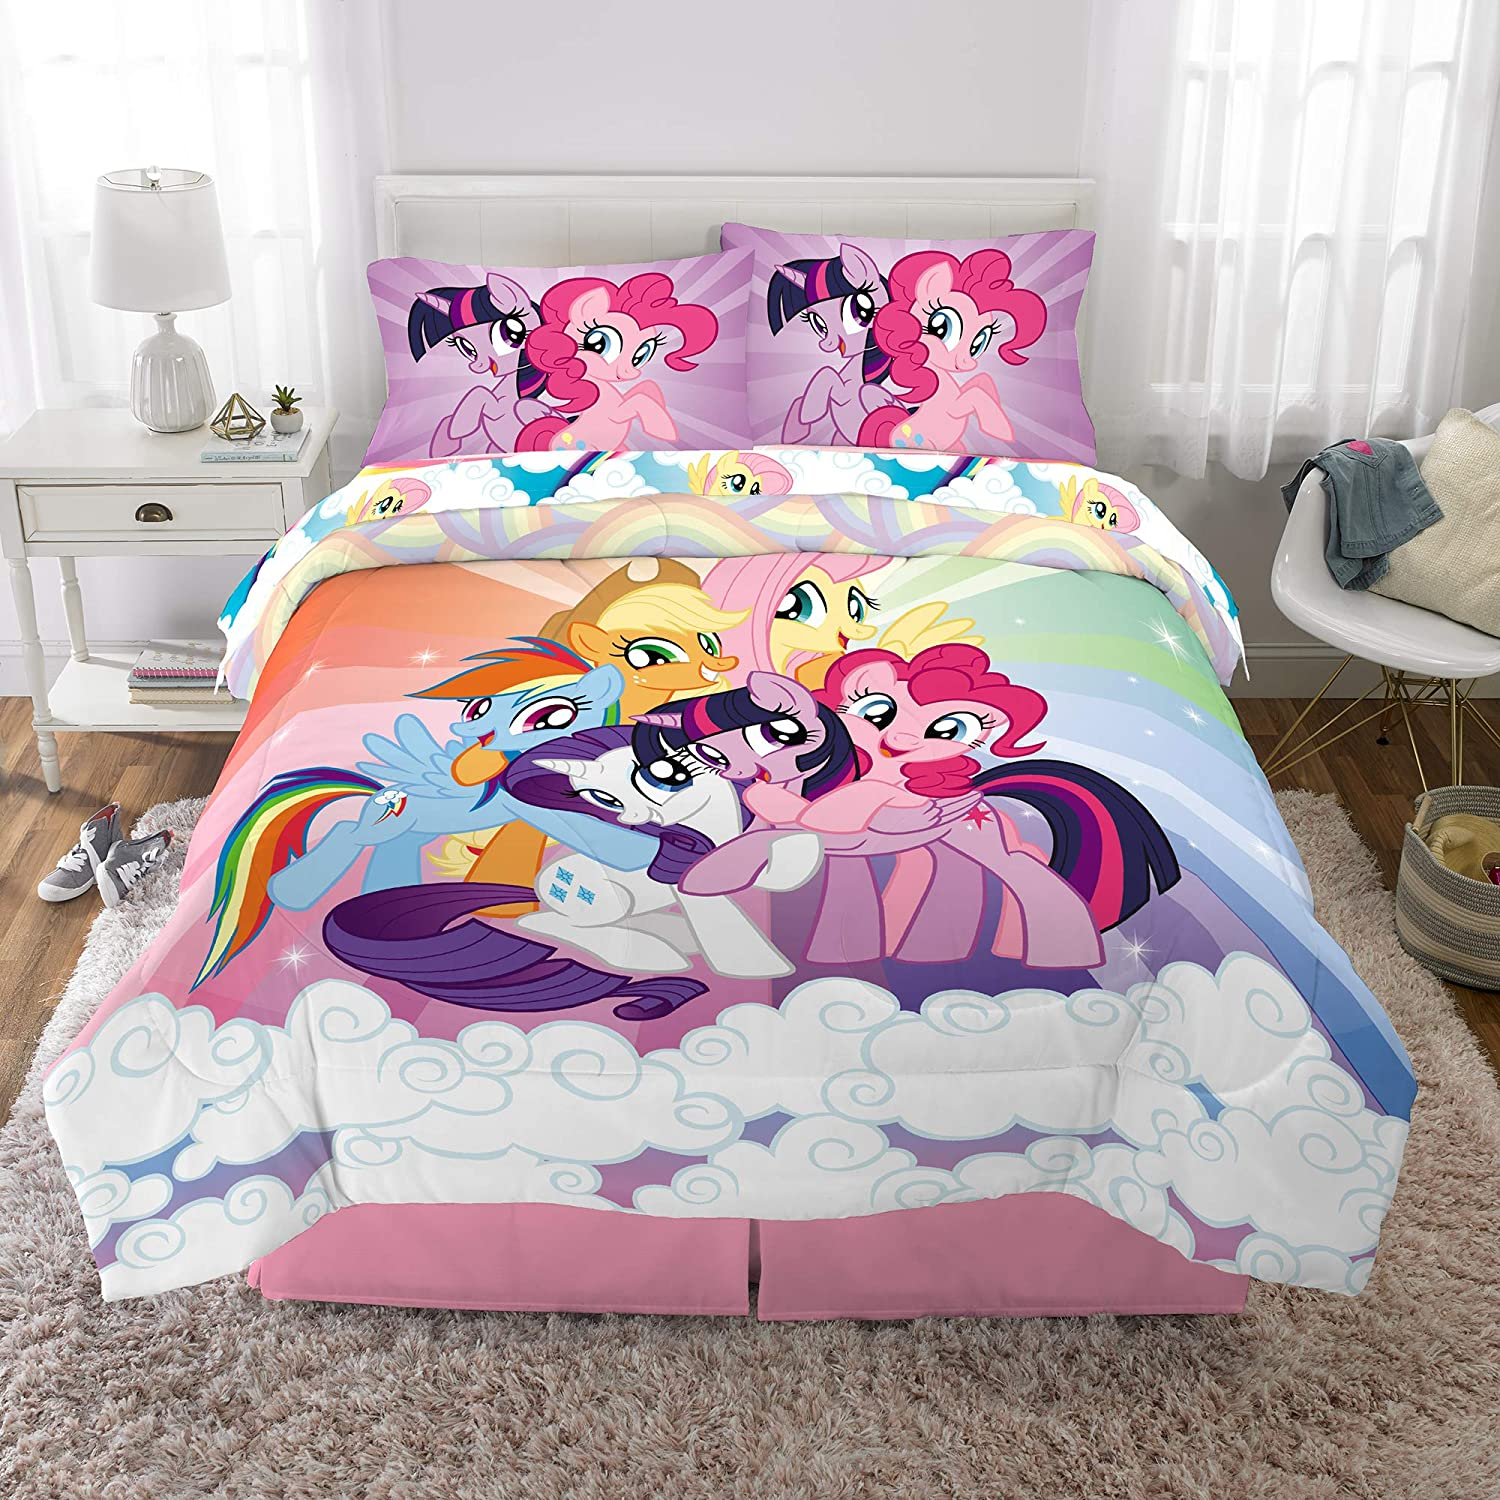 Franco Kids Bedding Super Soft Comforter and Sheet Set, 5 Piece Full Size, My Little Pony